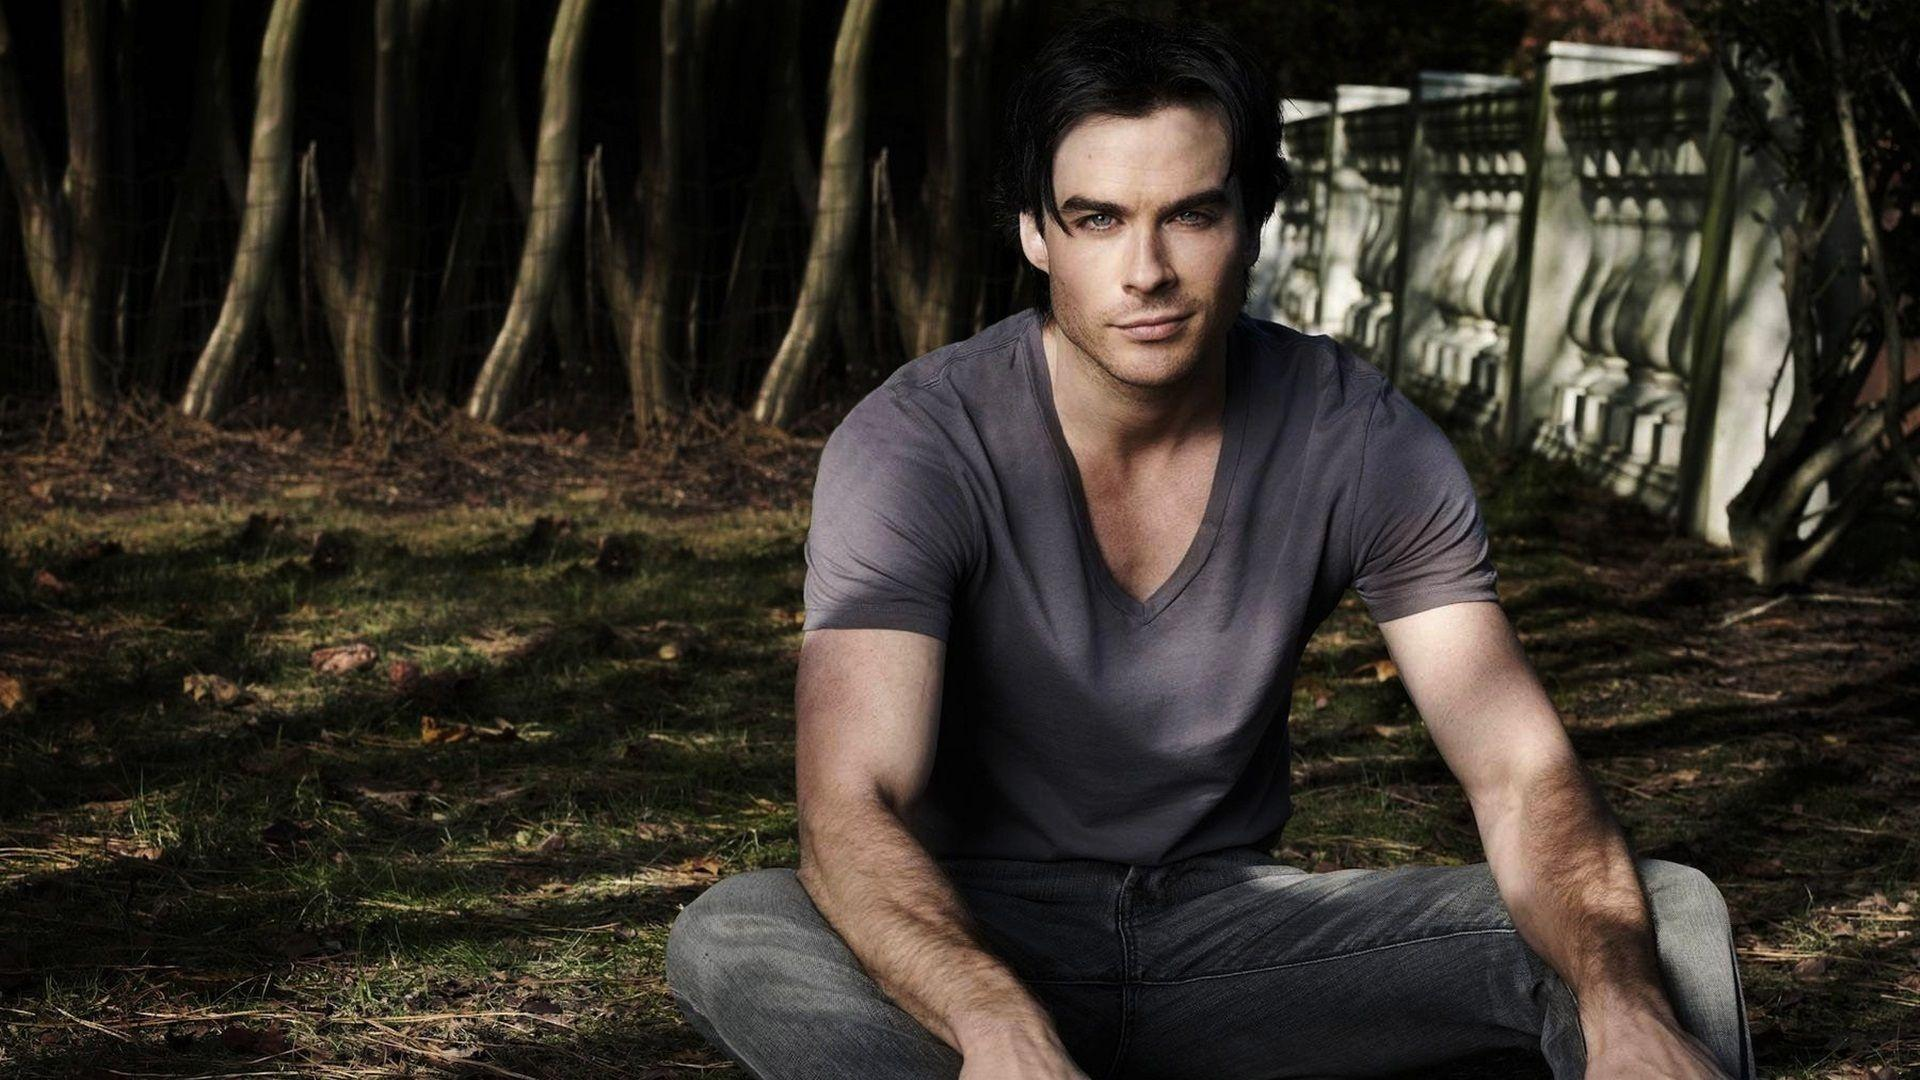 Damon Salvatore Quotes image wallpapers Damon HD wallpapers and